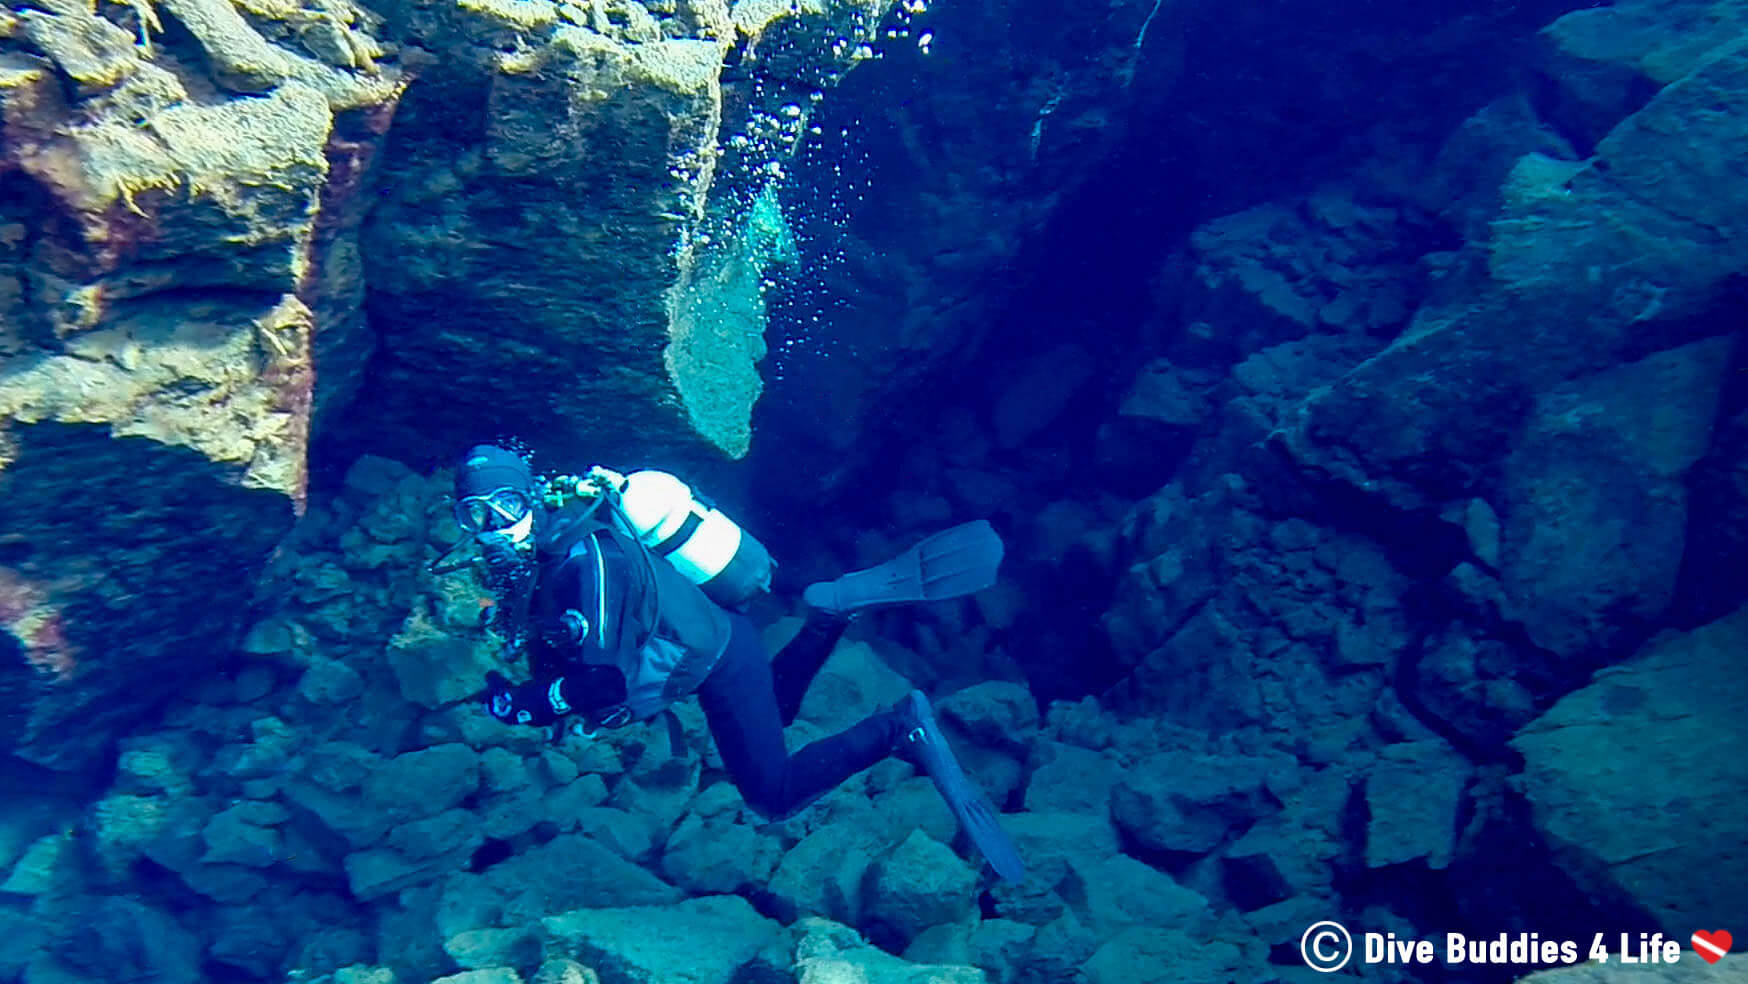 Joey Swimming With Scuba Gear Deep In The Silfra Crack In Iceland, Europe